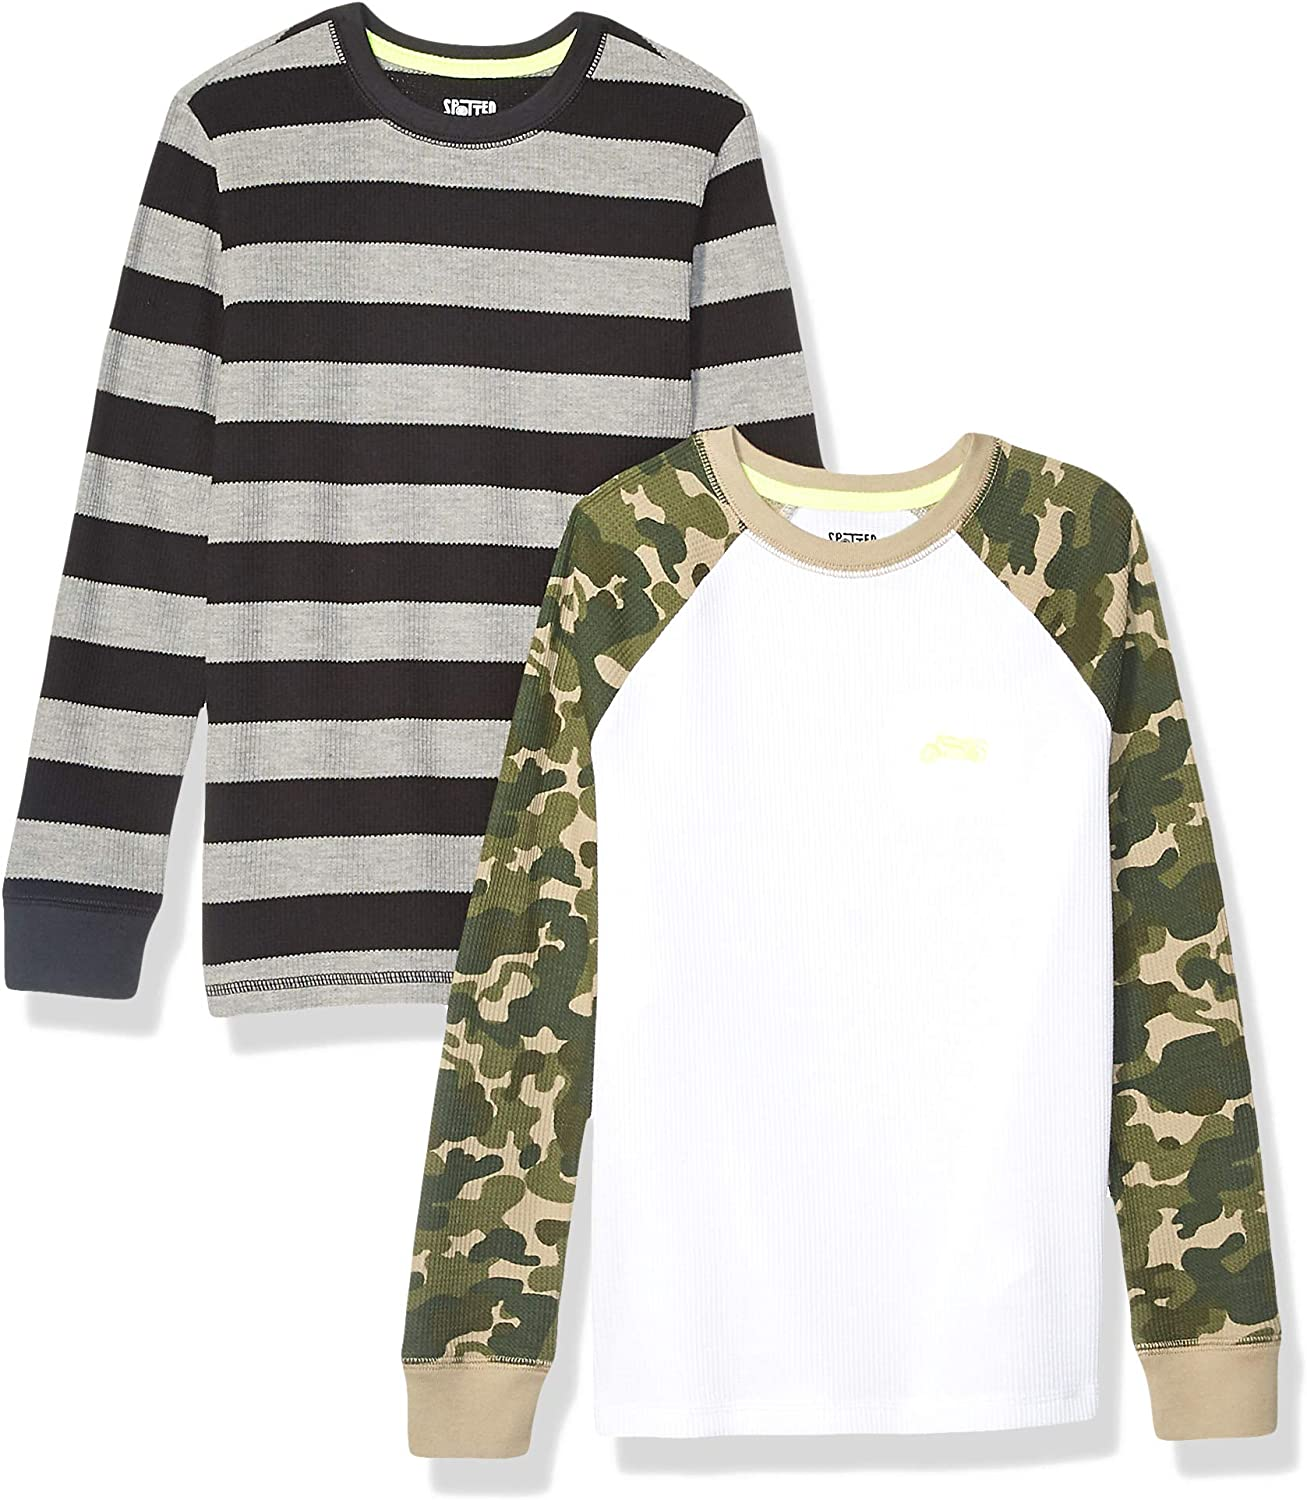 Spotted Zebra Boys Light-Weight Hooded Long-Sleeve T-Shirts Brand